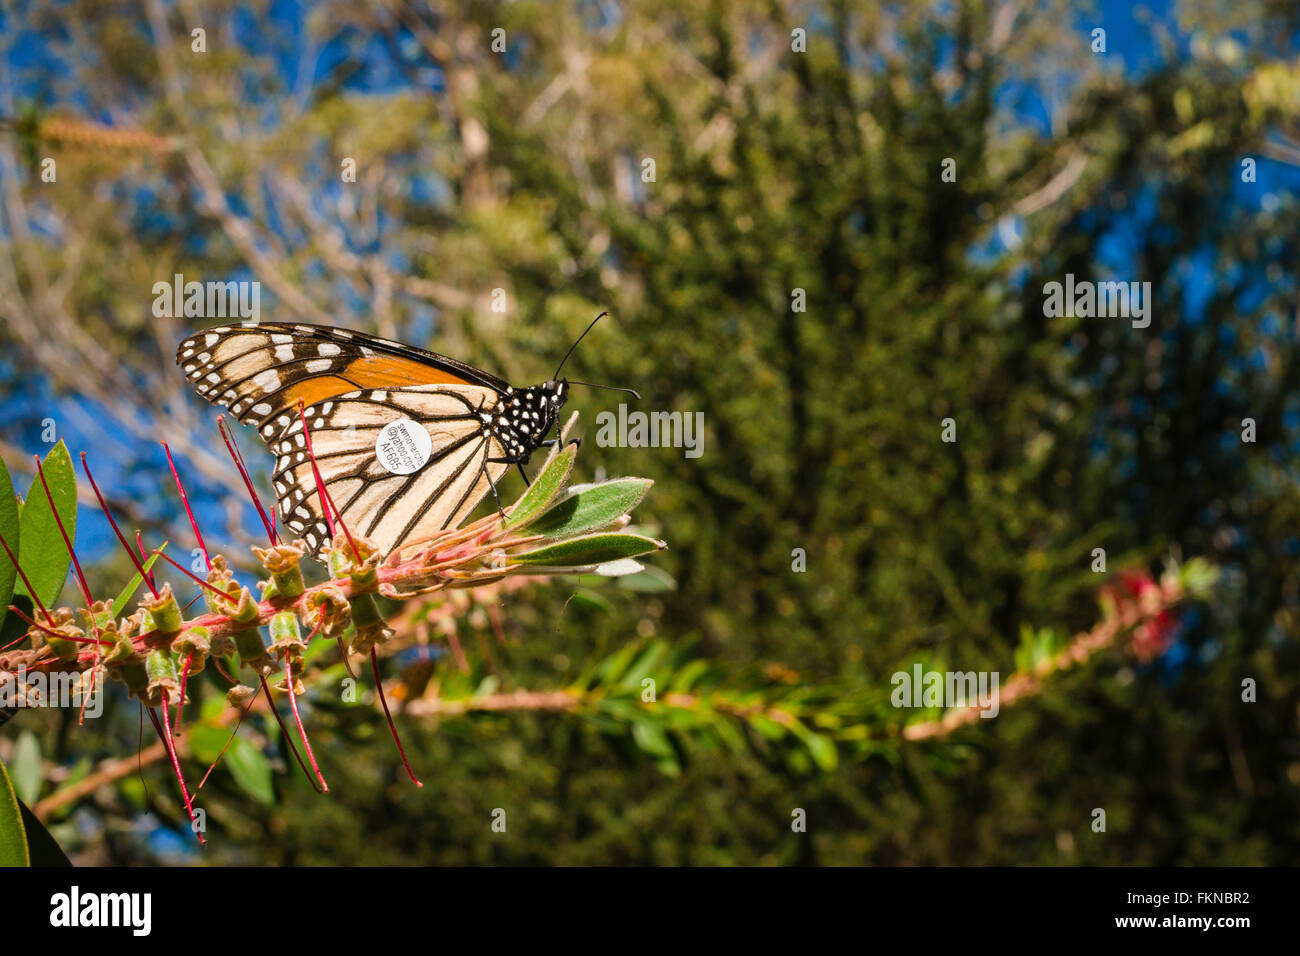 A tagged Monarch Butterfly as part of a migration tracking program in California, USA - Stock Image